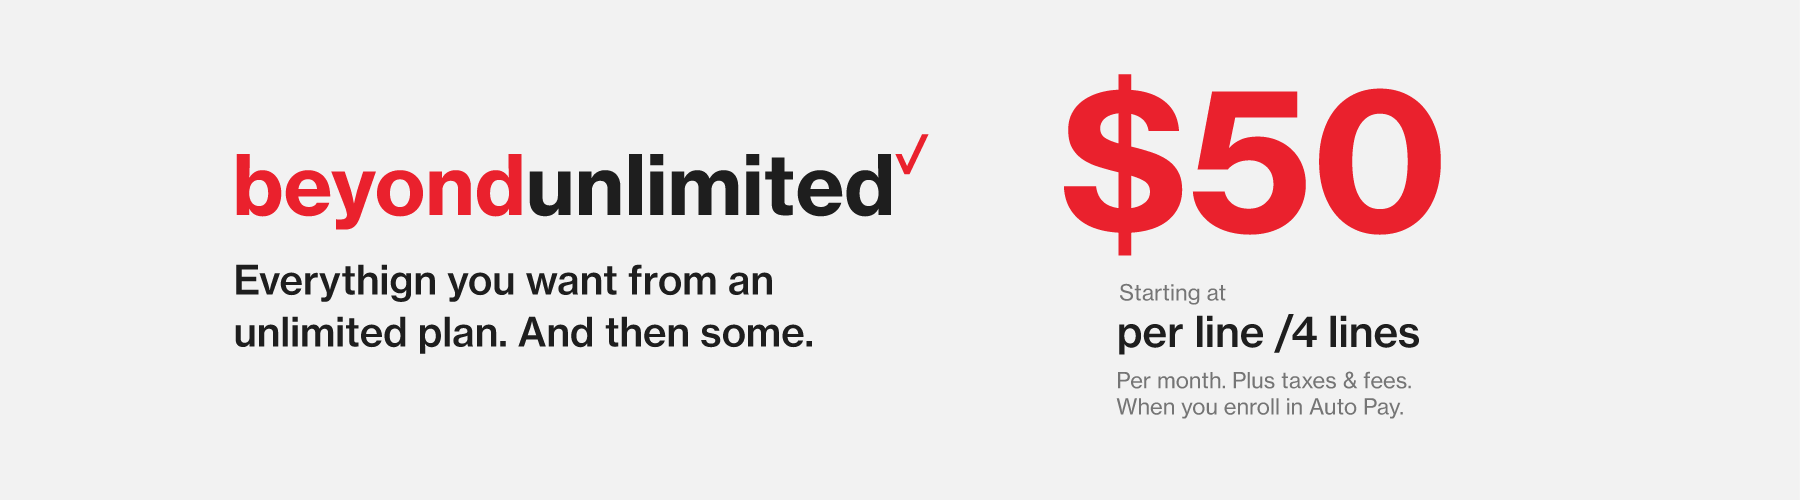 Beyond Unlimited Plan - $50